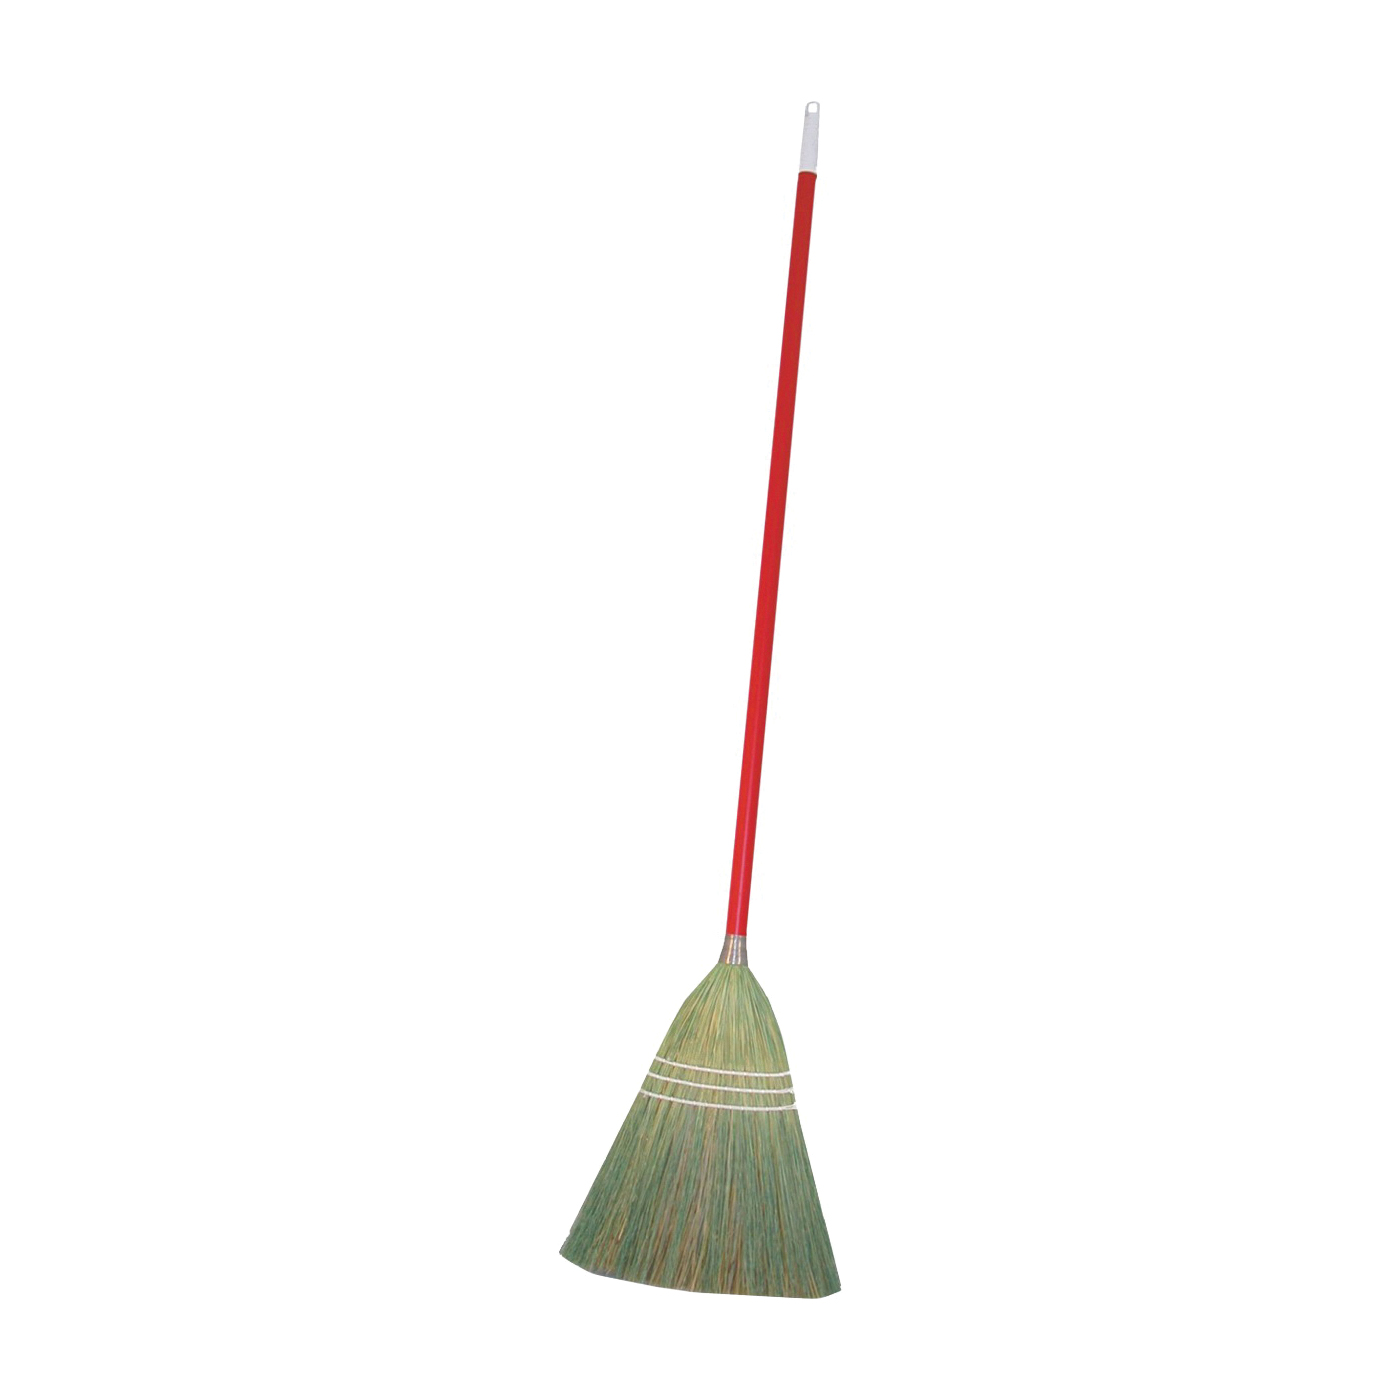 Picture of BIRDWELL 315-6 Economy Broom, Sotol Fiber Bristle, Assorted Bristle